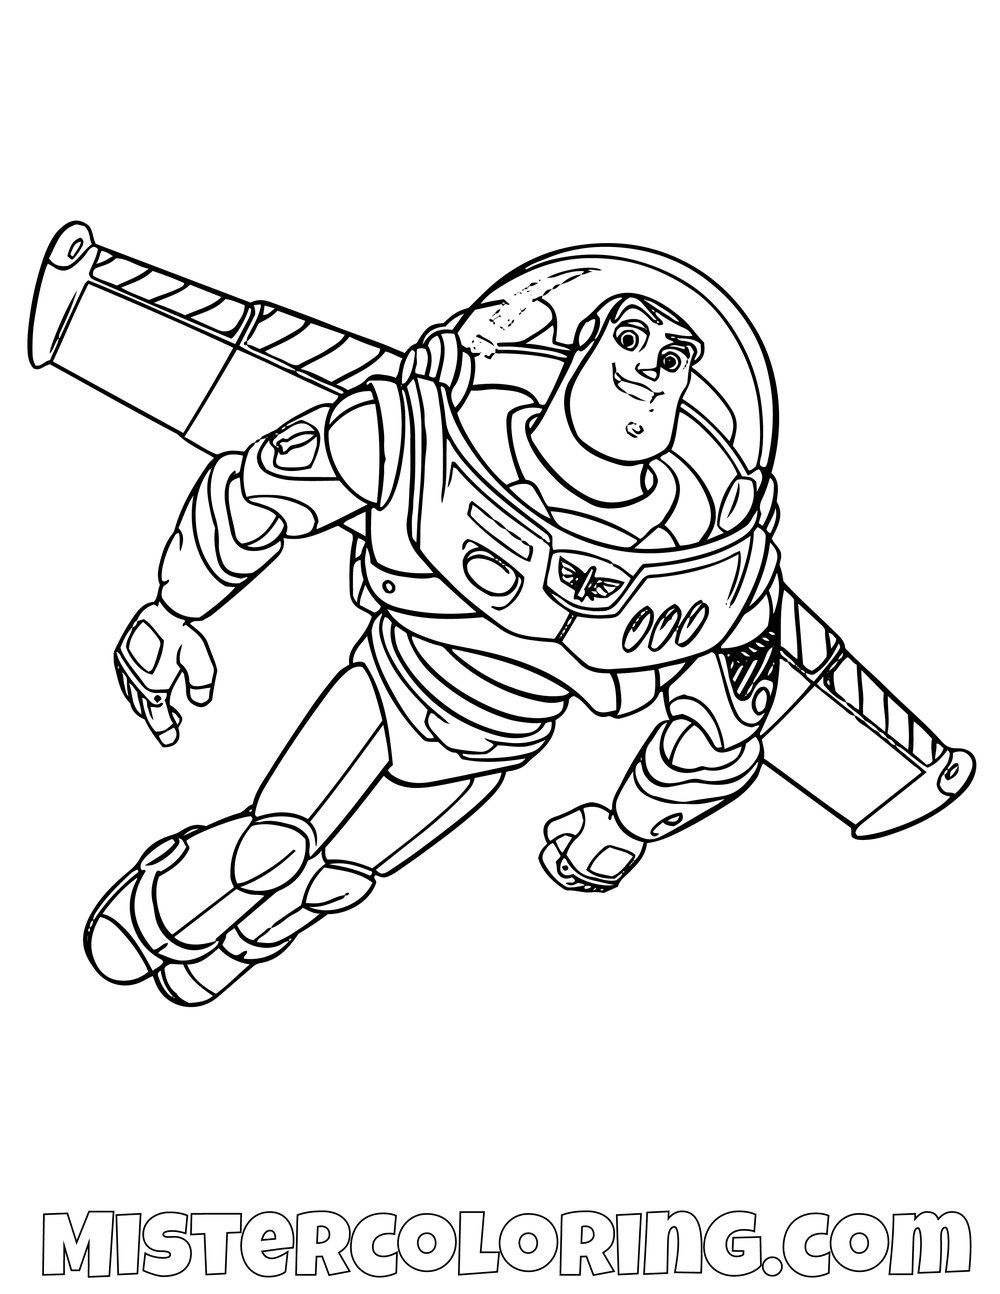 Buzz Lightyear Flying Toy Story Coloring Page Toy Story Coloring